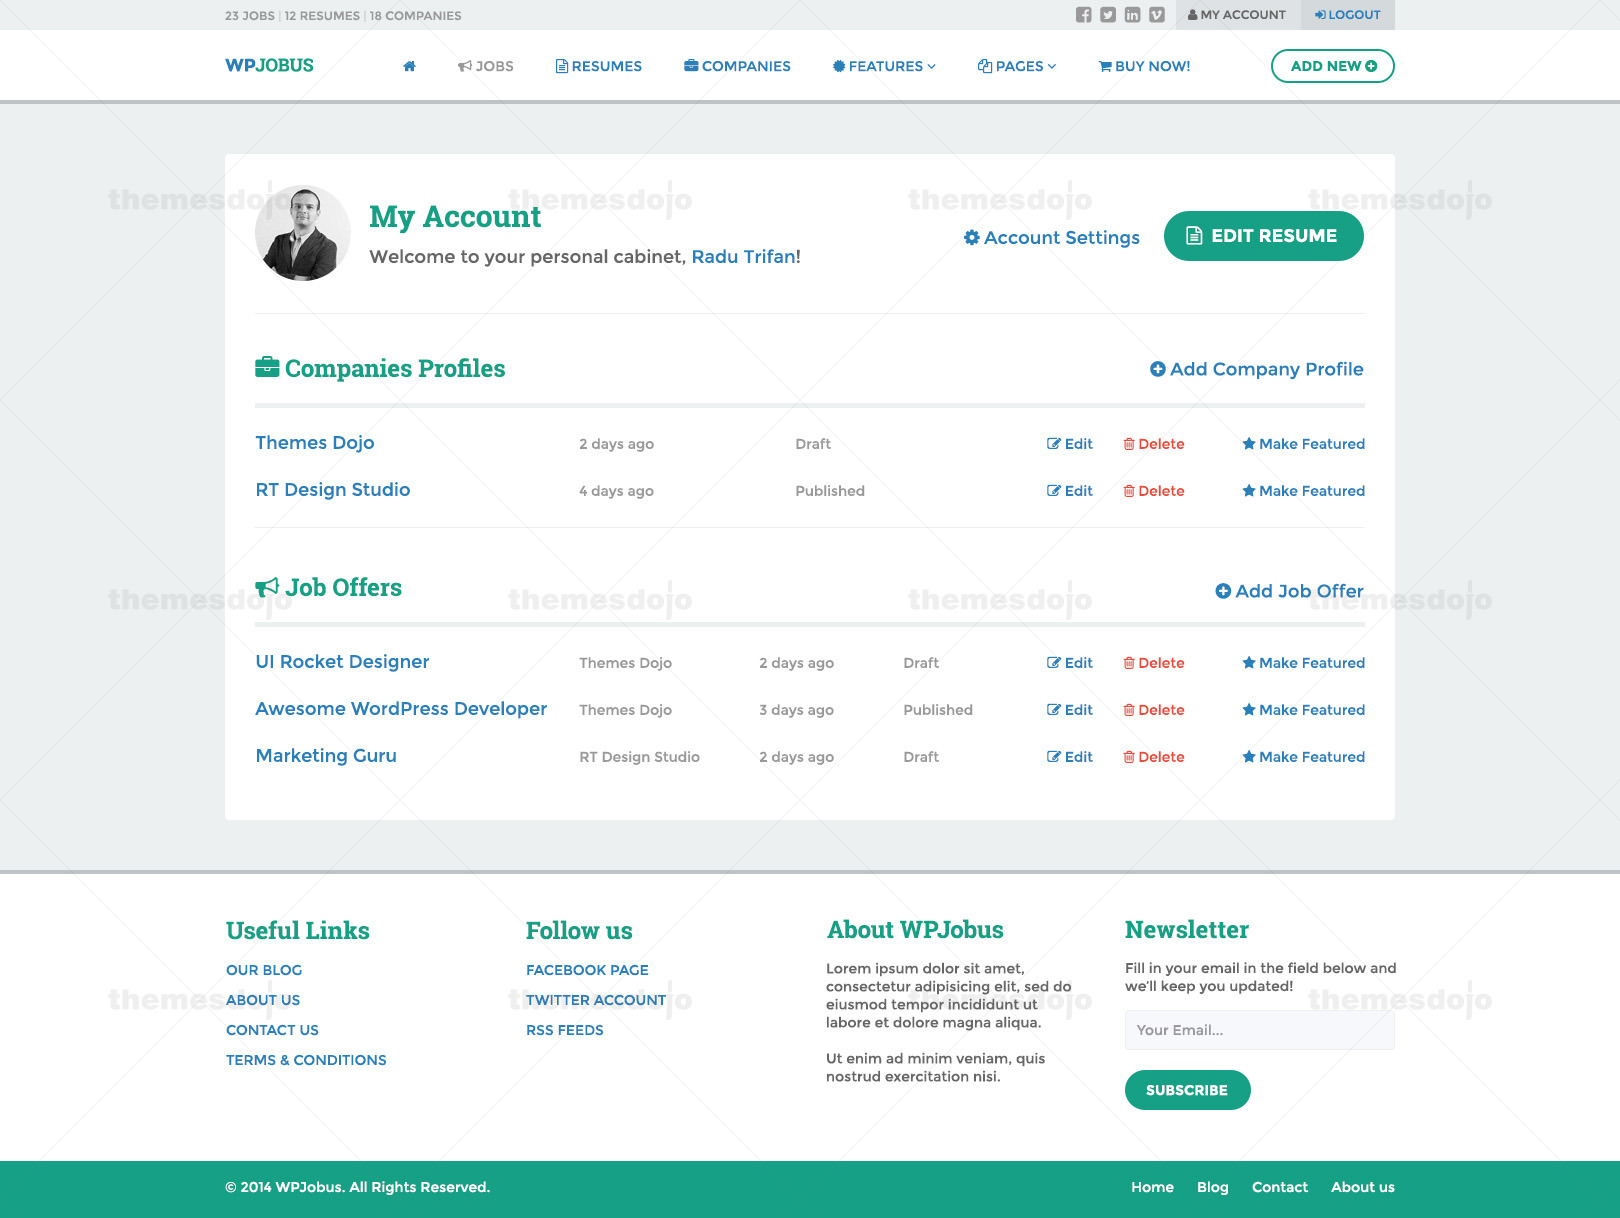 wpjobus portal resume and company profile by themes